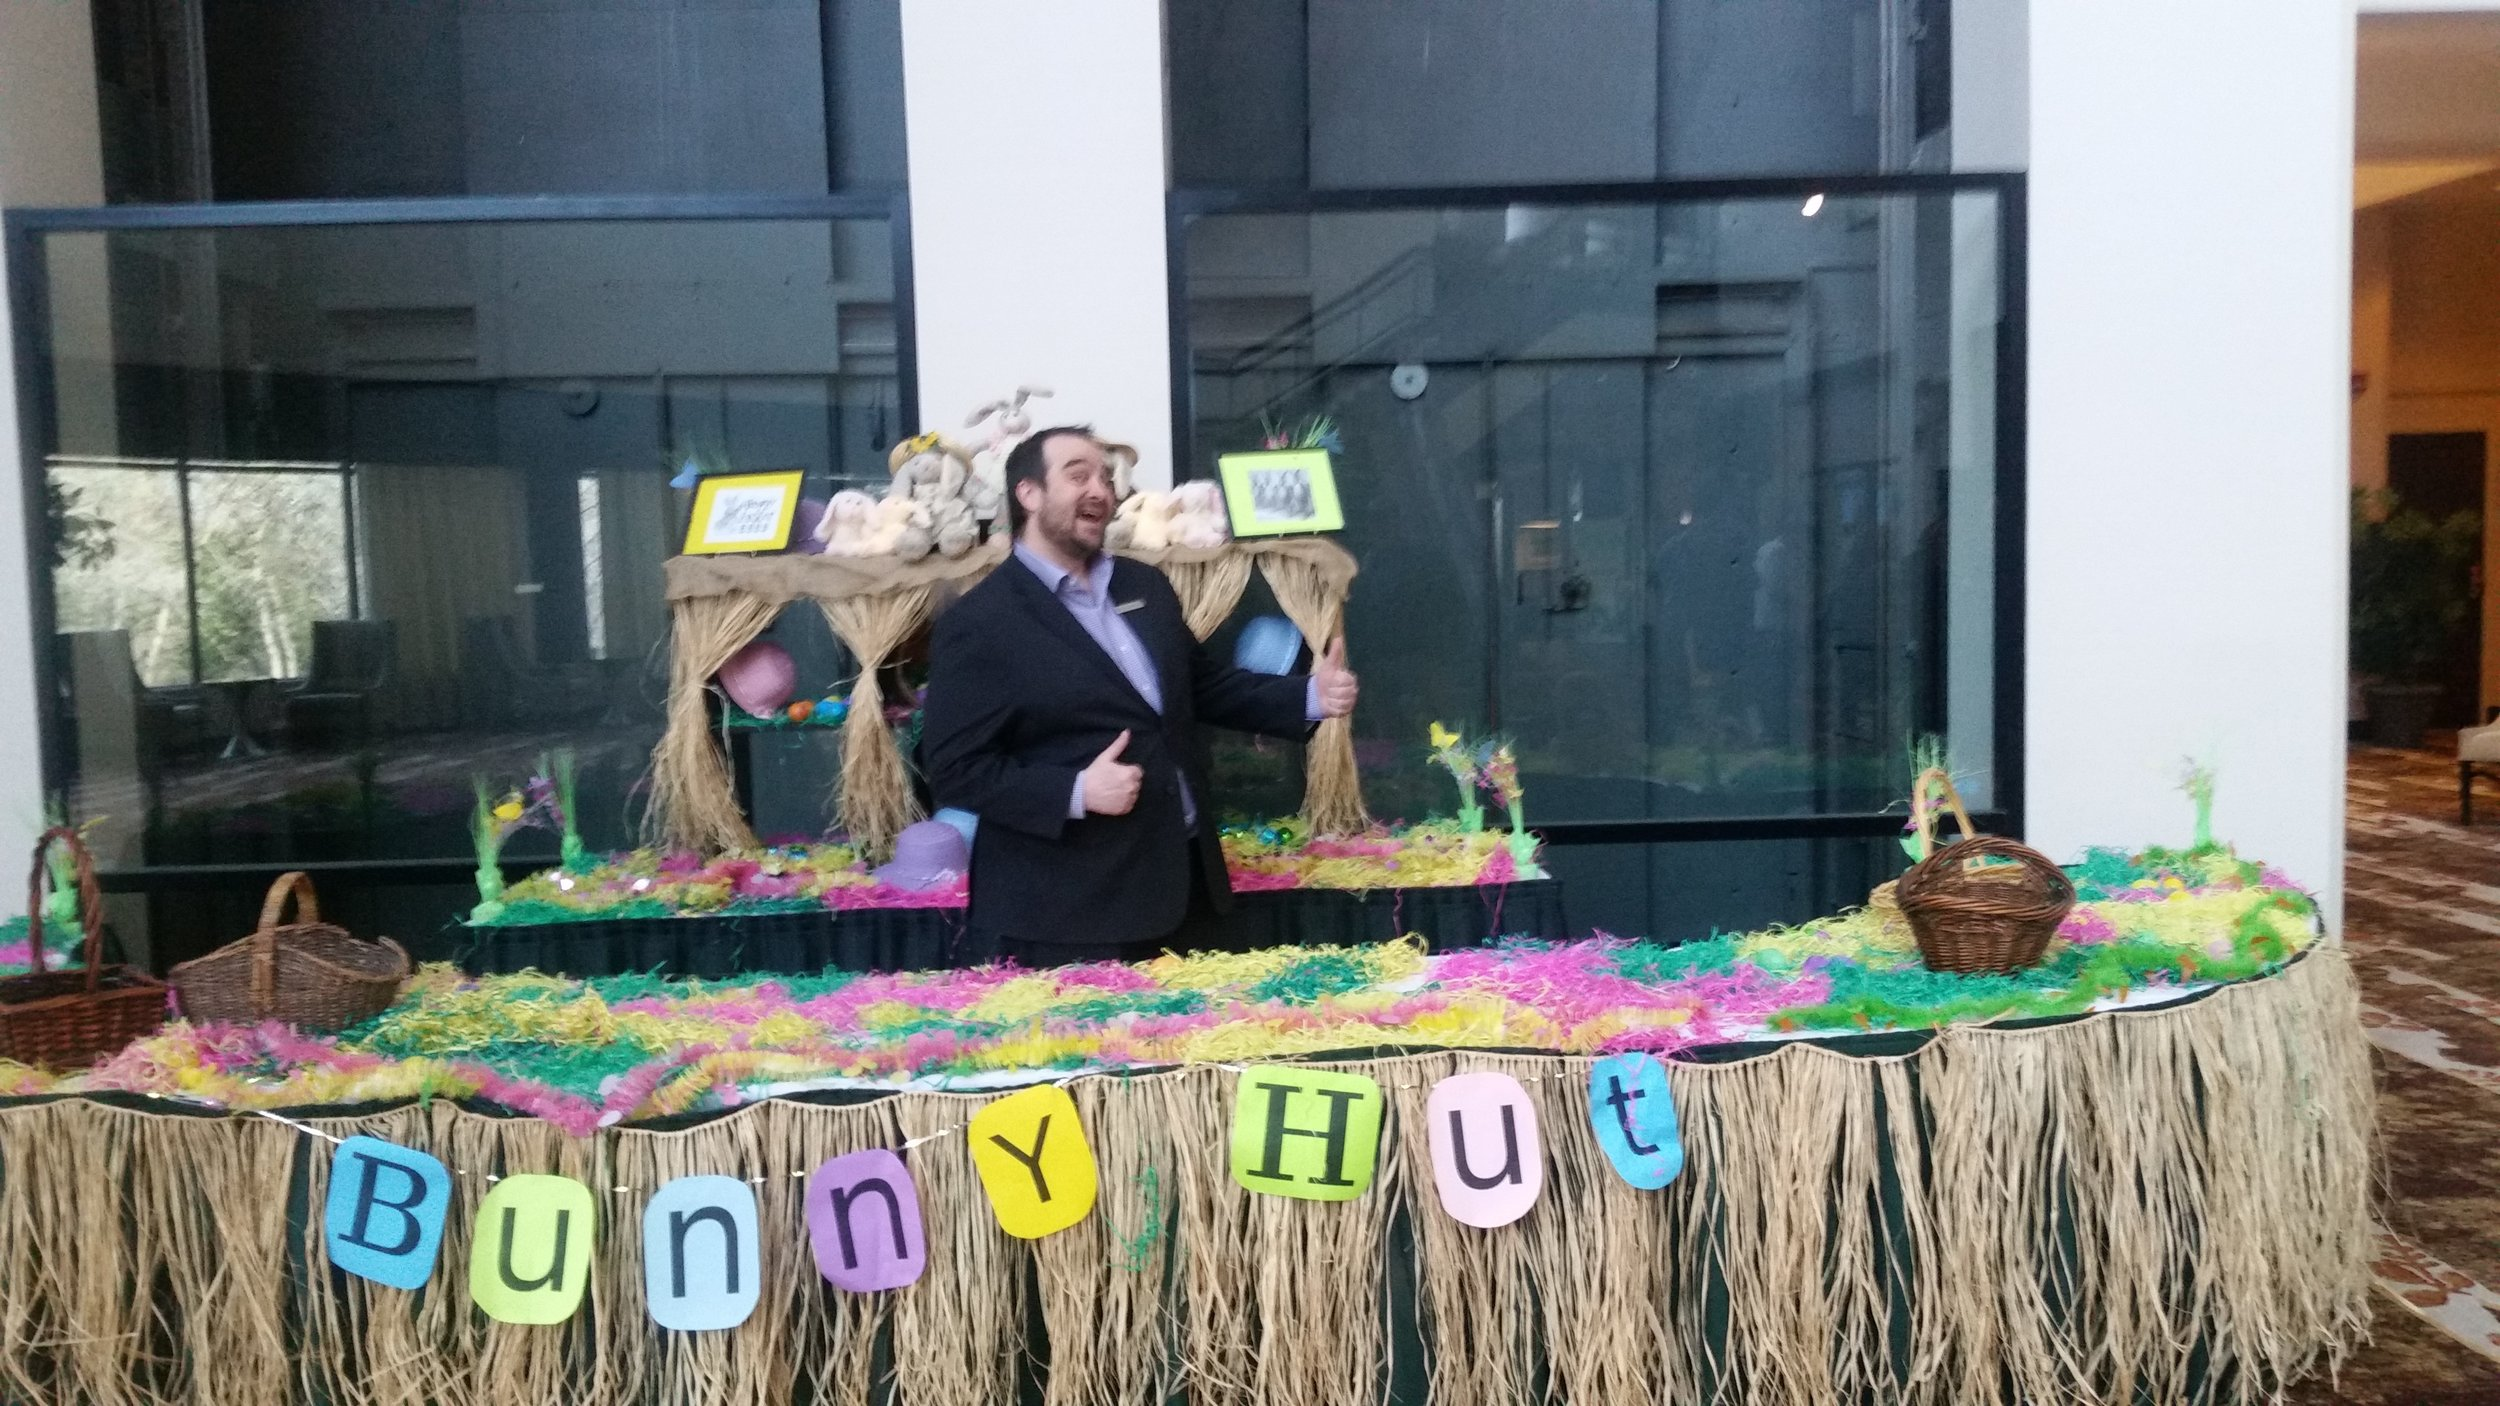 Our Director of rooms David having fun behind the bunny hut.